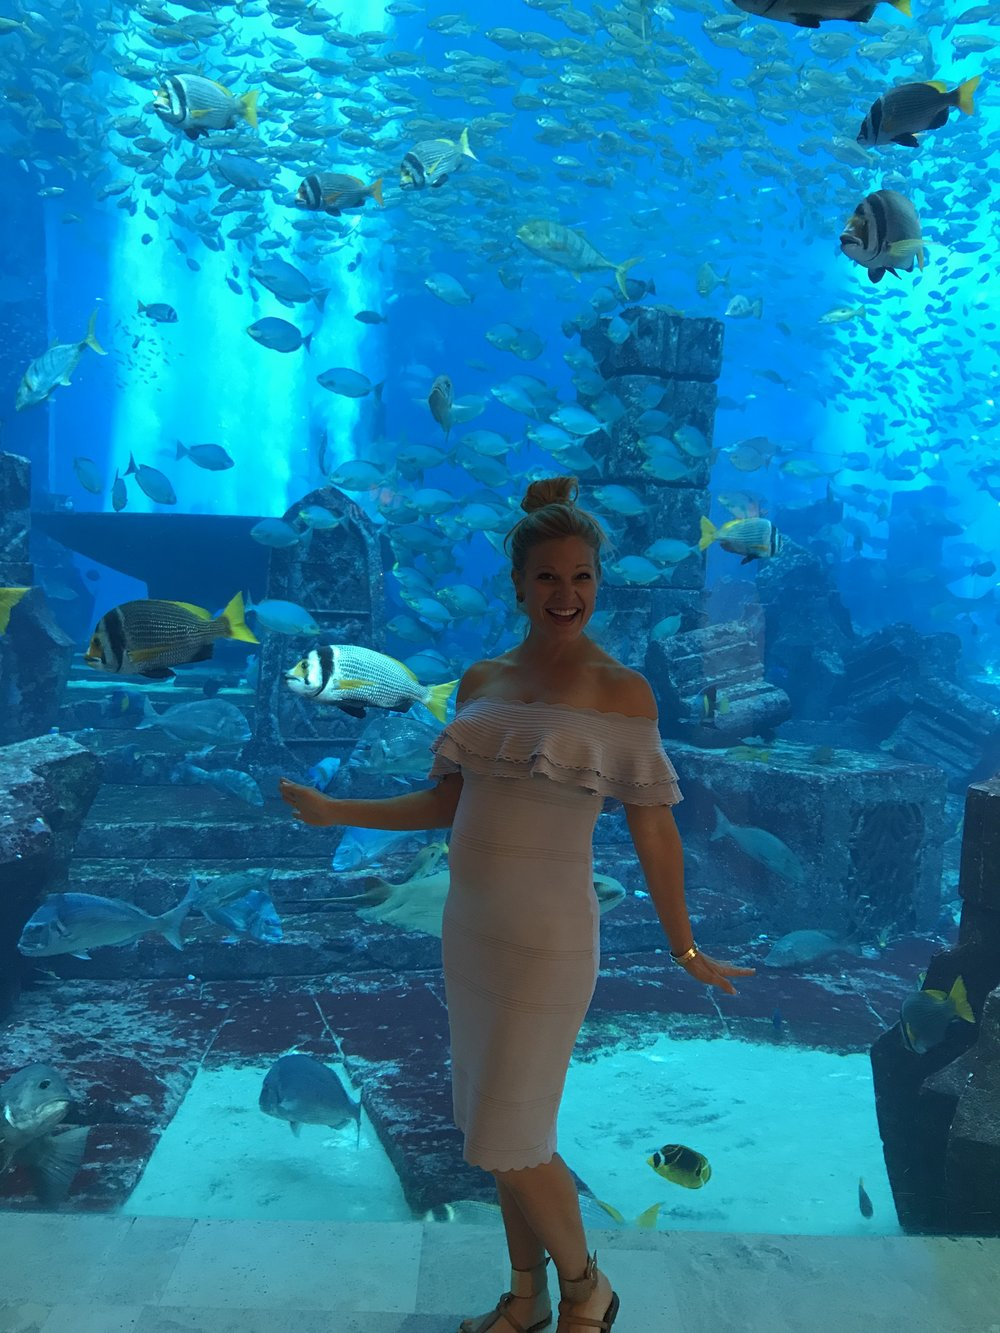 Anna Kooiman dubai arabian adventures united arab emirates gordon ramsay aquarium waterslide desert fitness travel lifestyle fashion adventure style